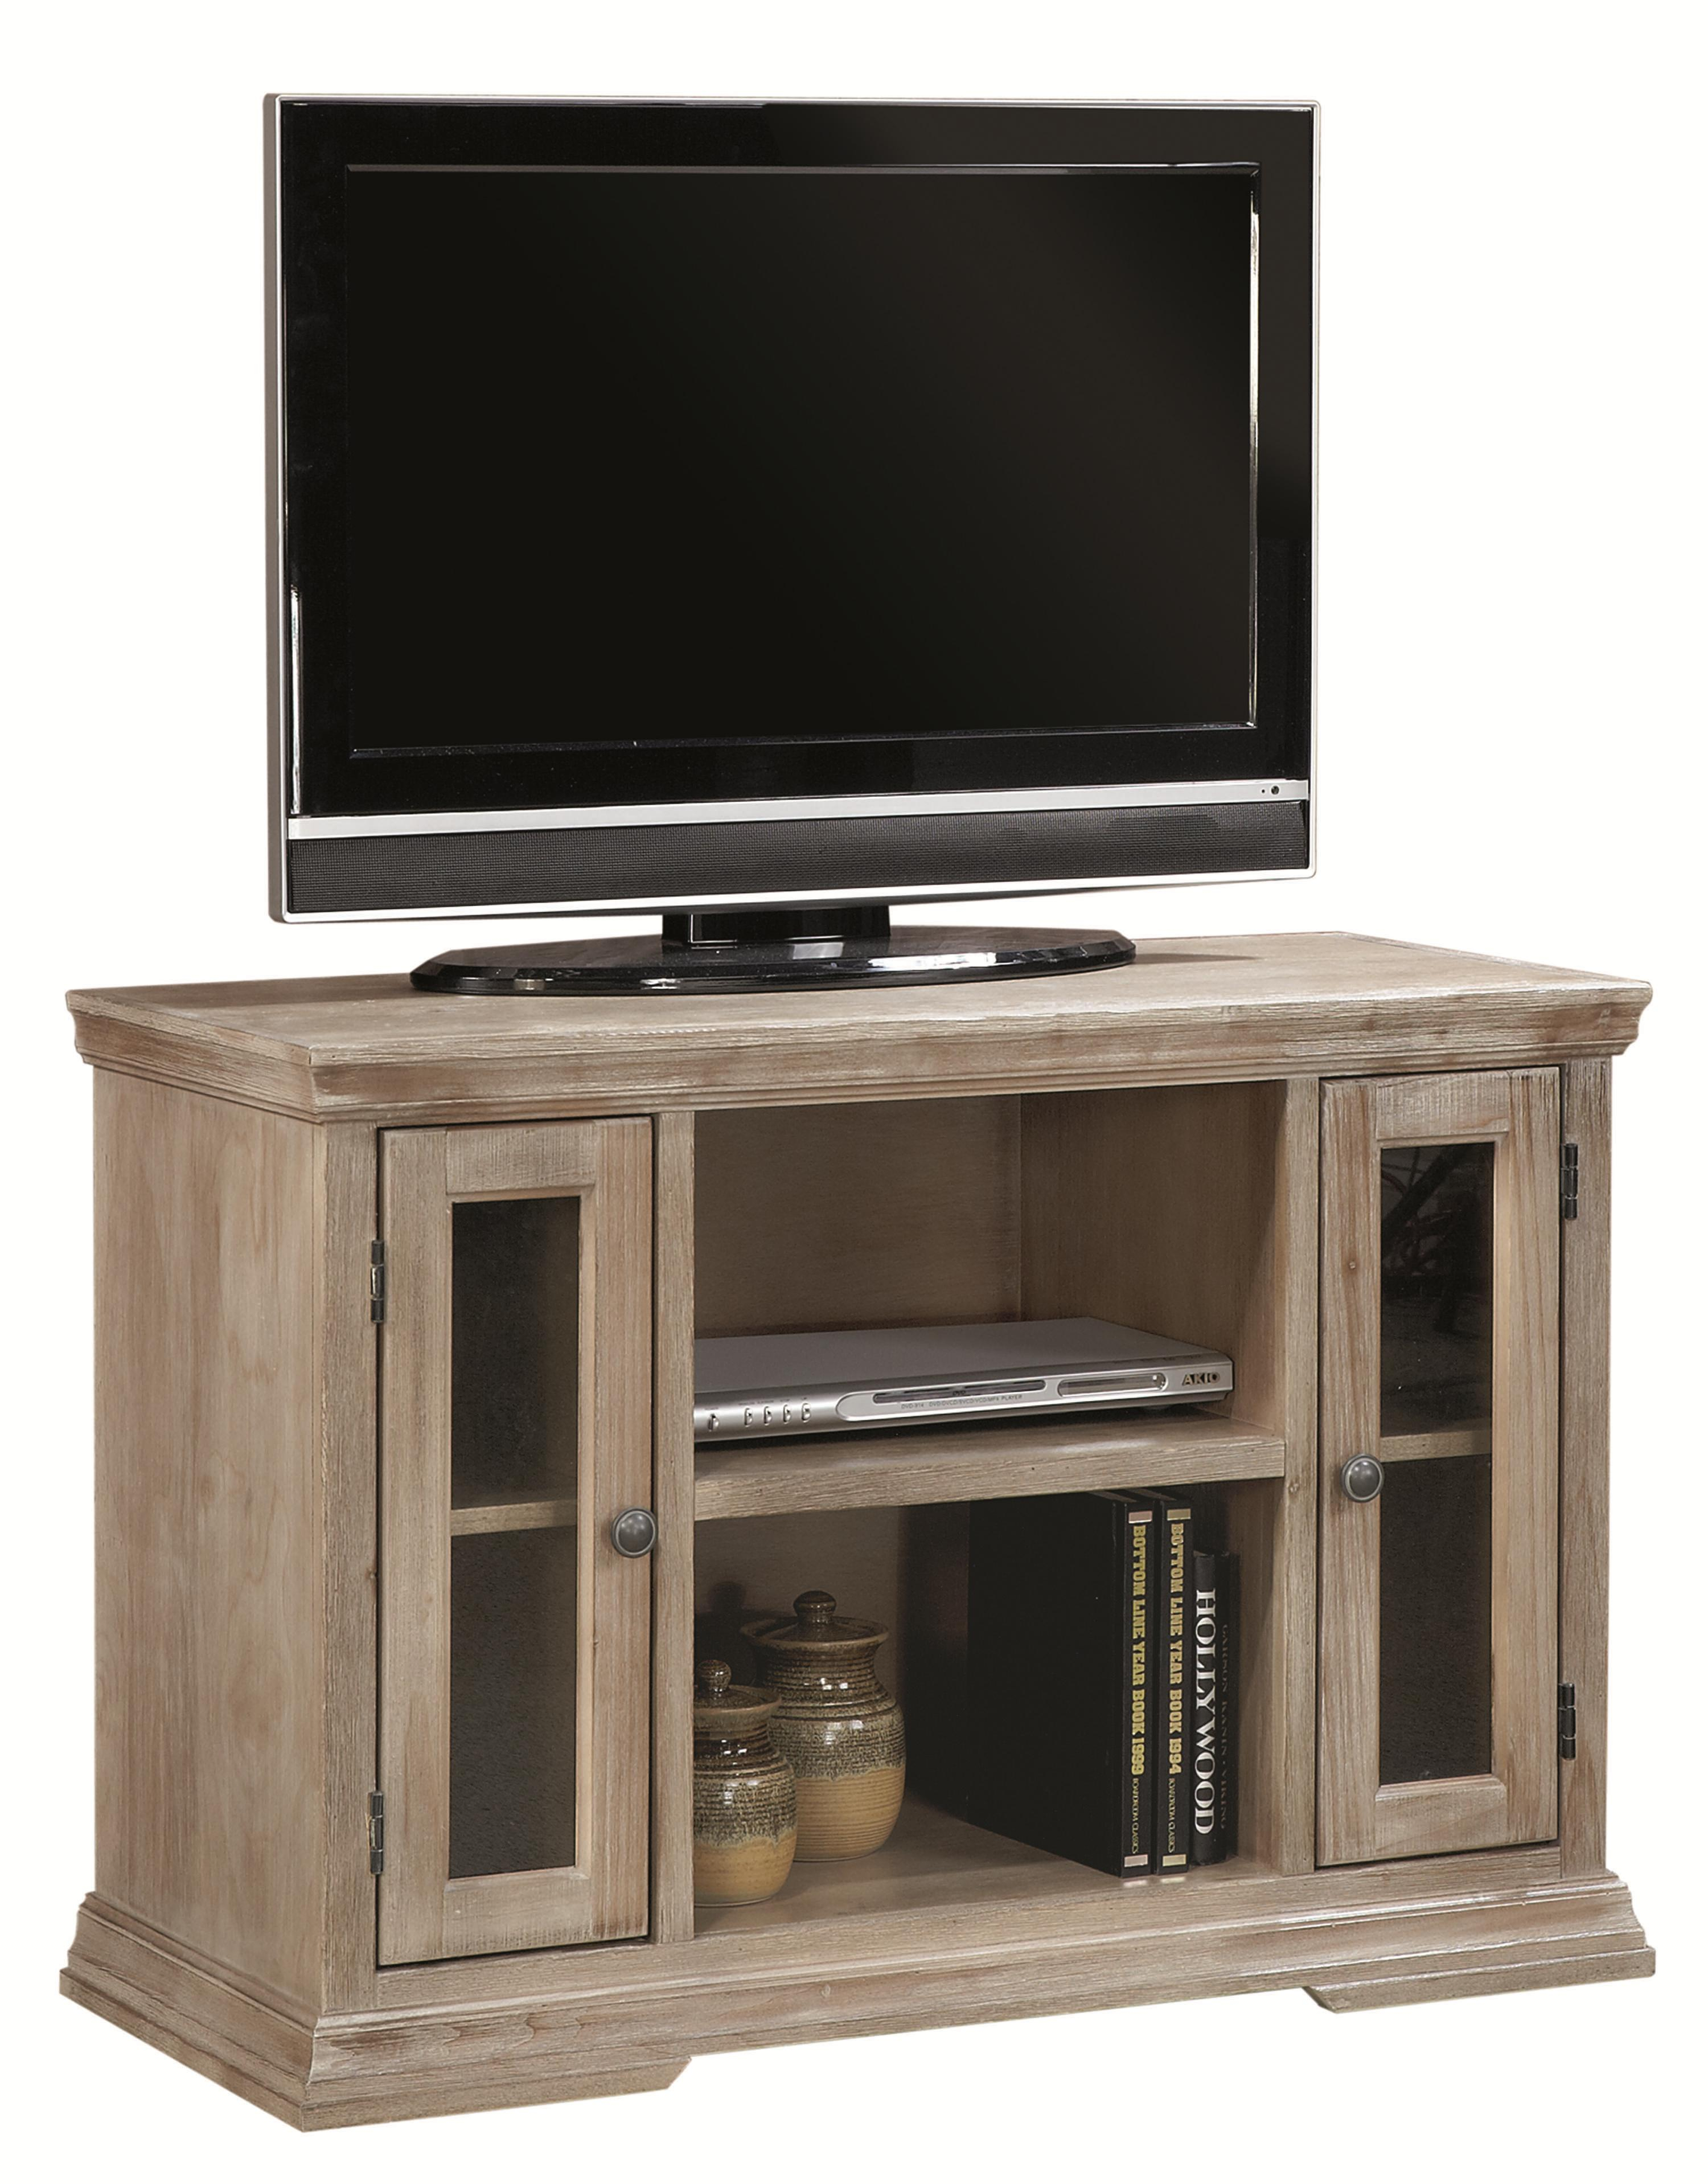 Aspenhome Canyon Creek Wck1041-Drf 41-Inch Tv Console With 2 Doors in Canyon 64 Inch Tv Stands (Image 2 of 30)